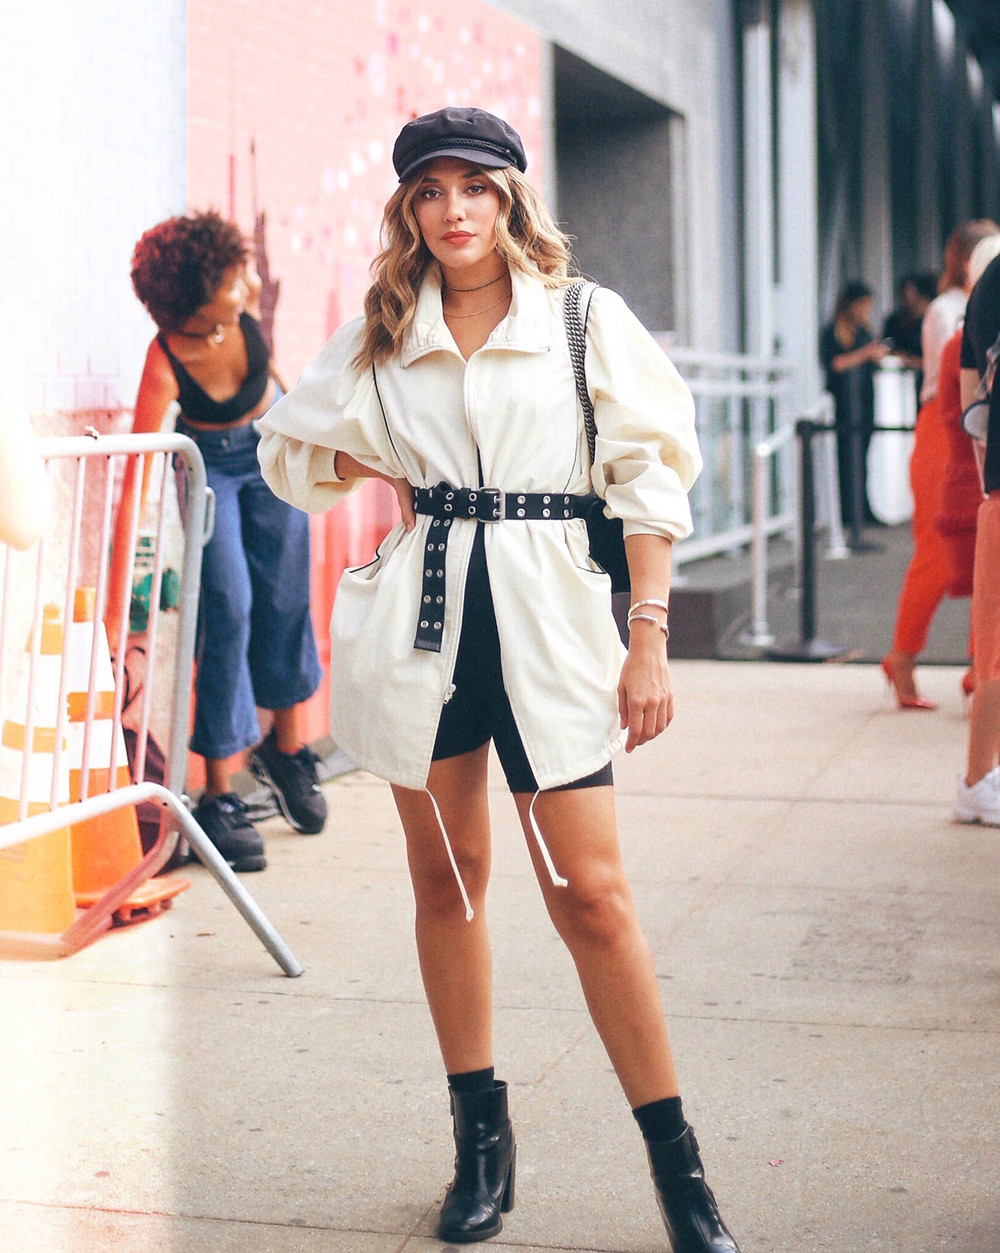 Blogger Barbie Brignoni wearing a vintage jacket with the biggest sleeves I've ever seen, biker shorts for NYFW.